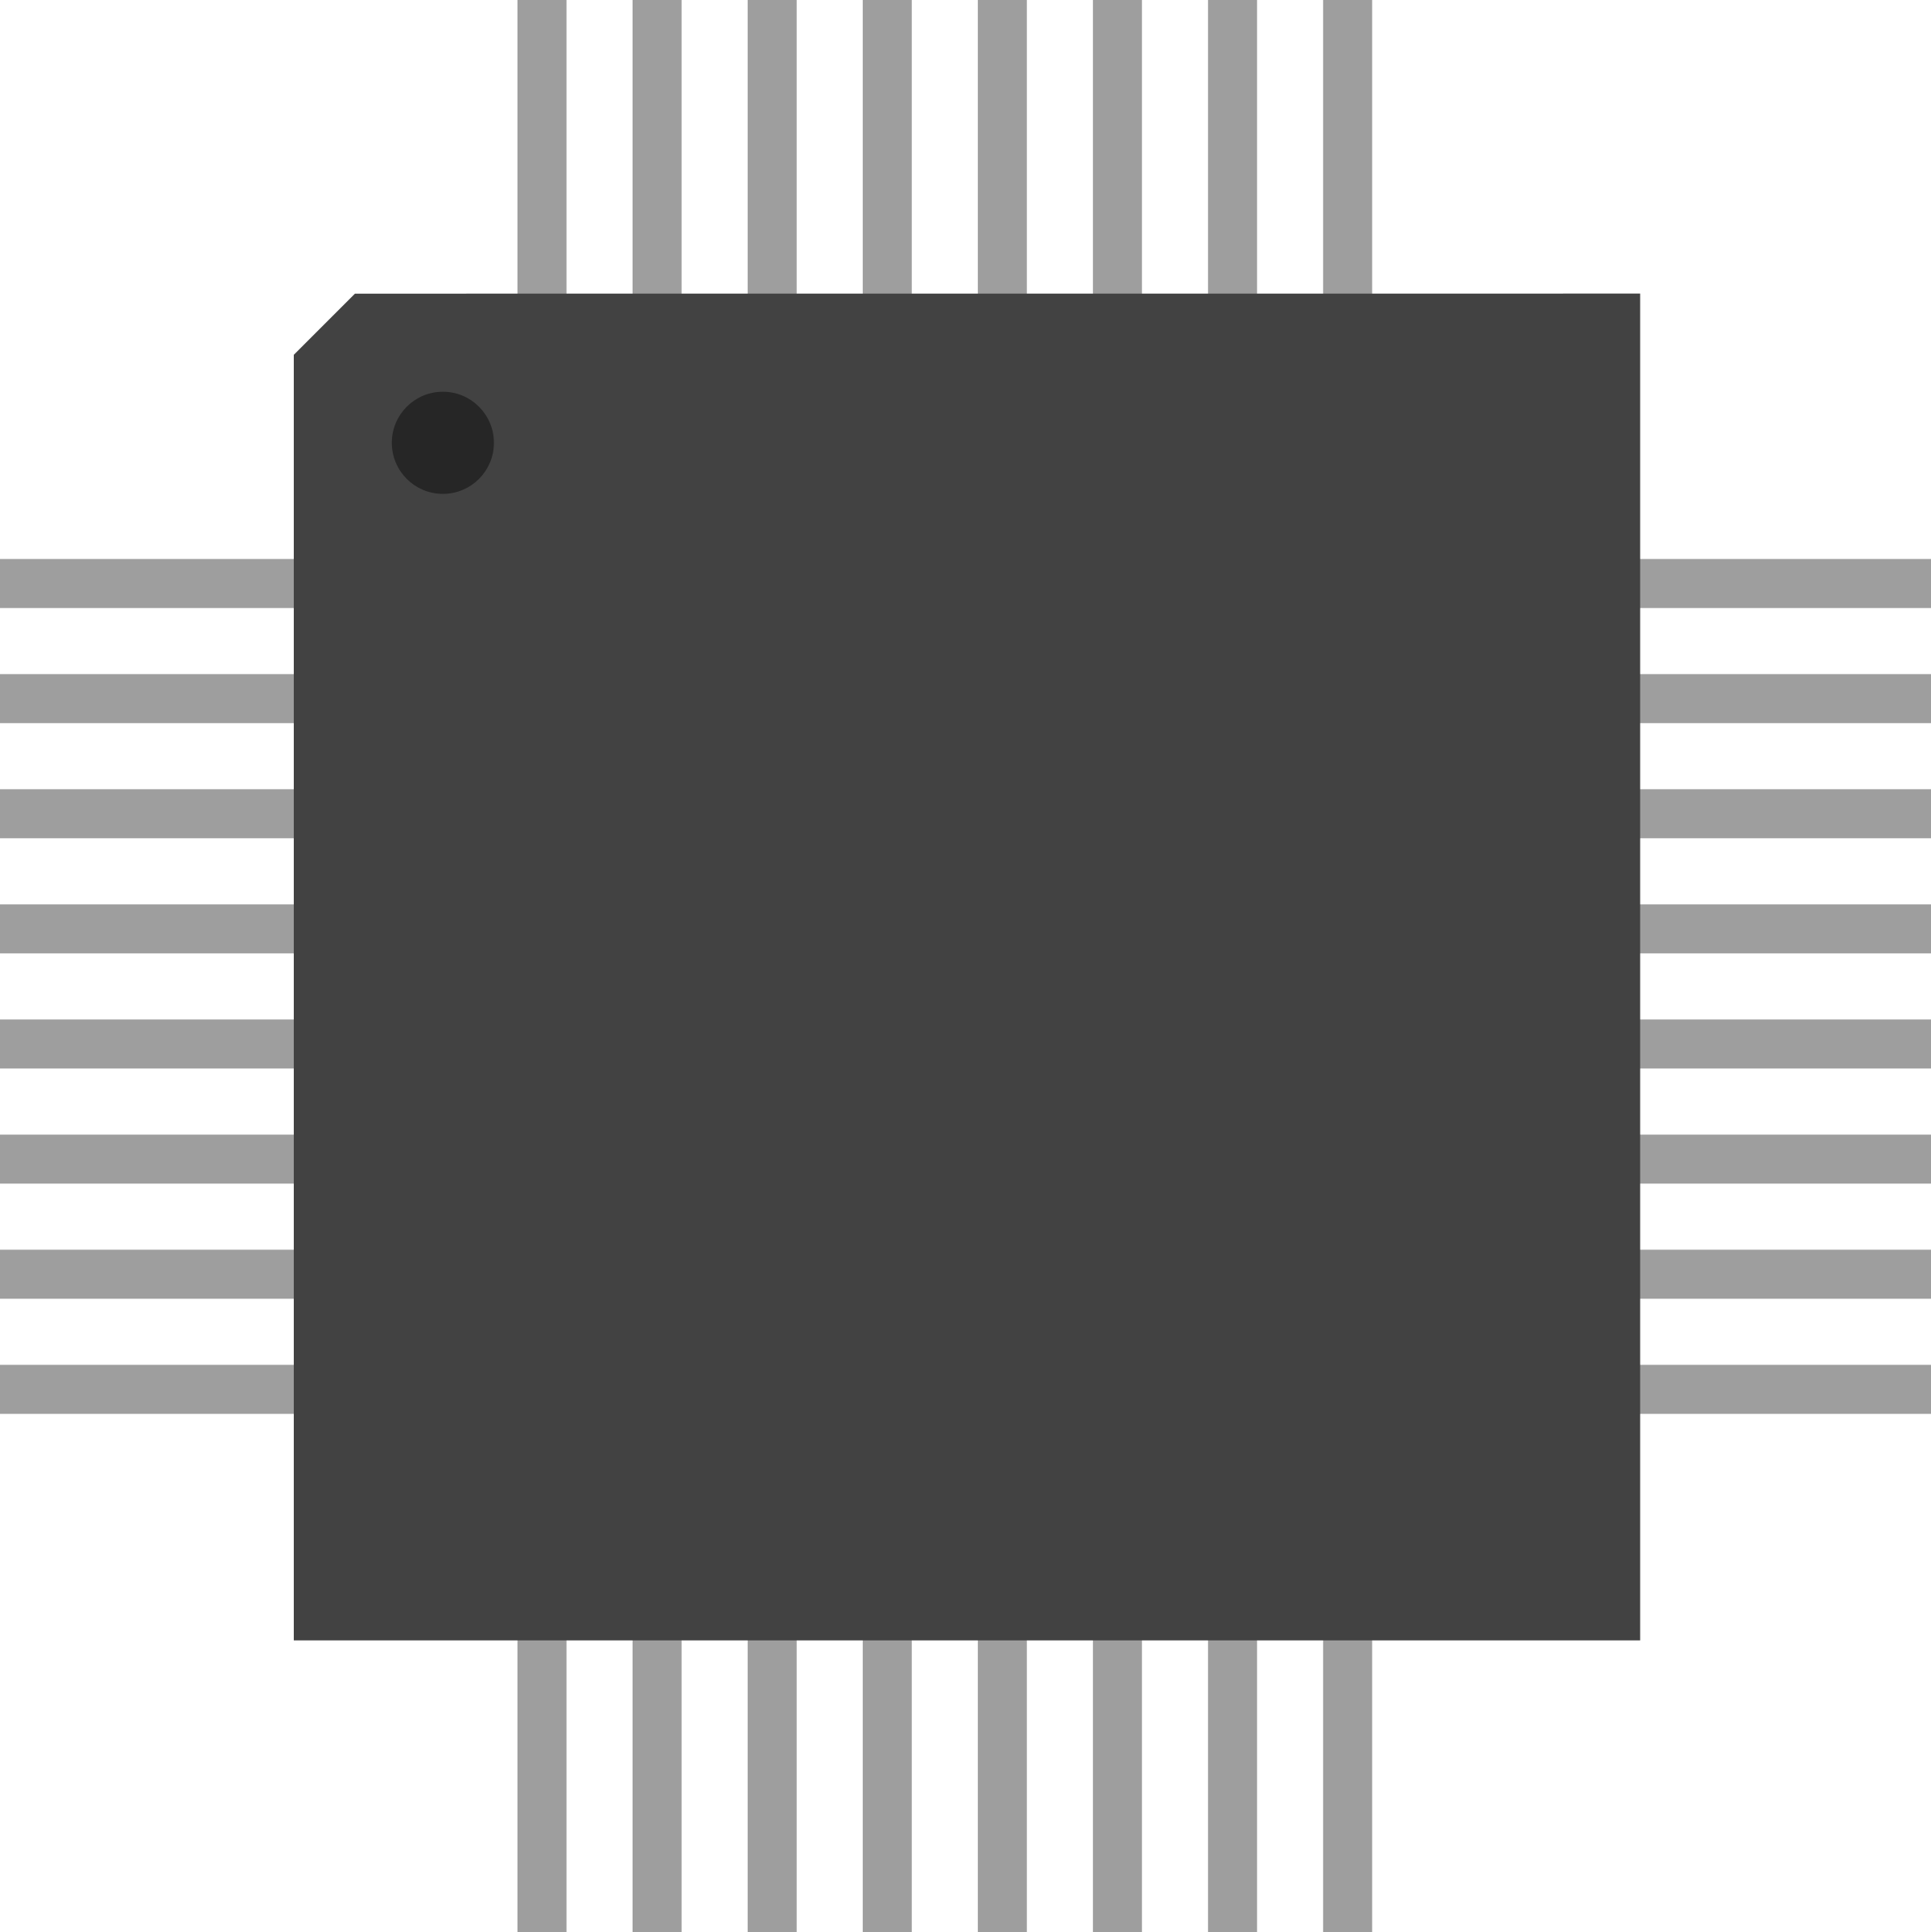 Ic chip clipart.